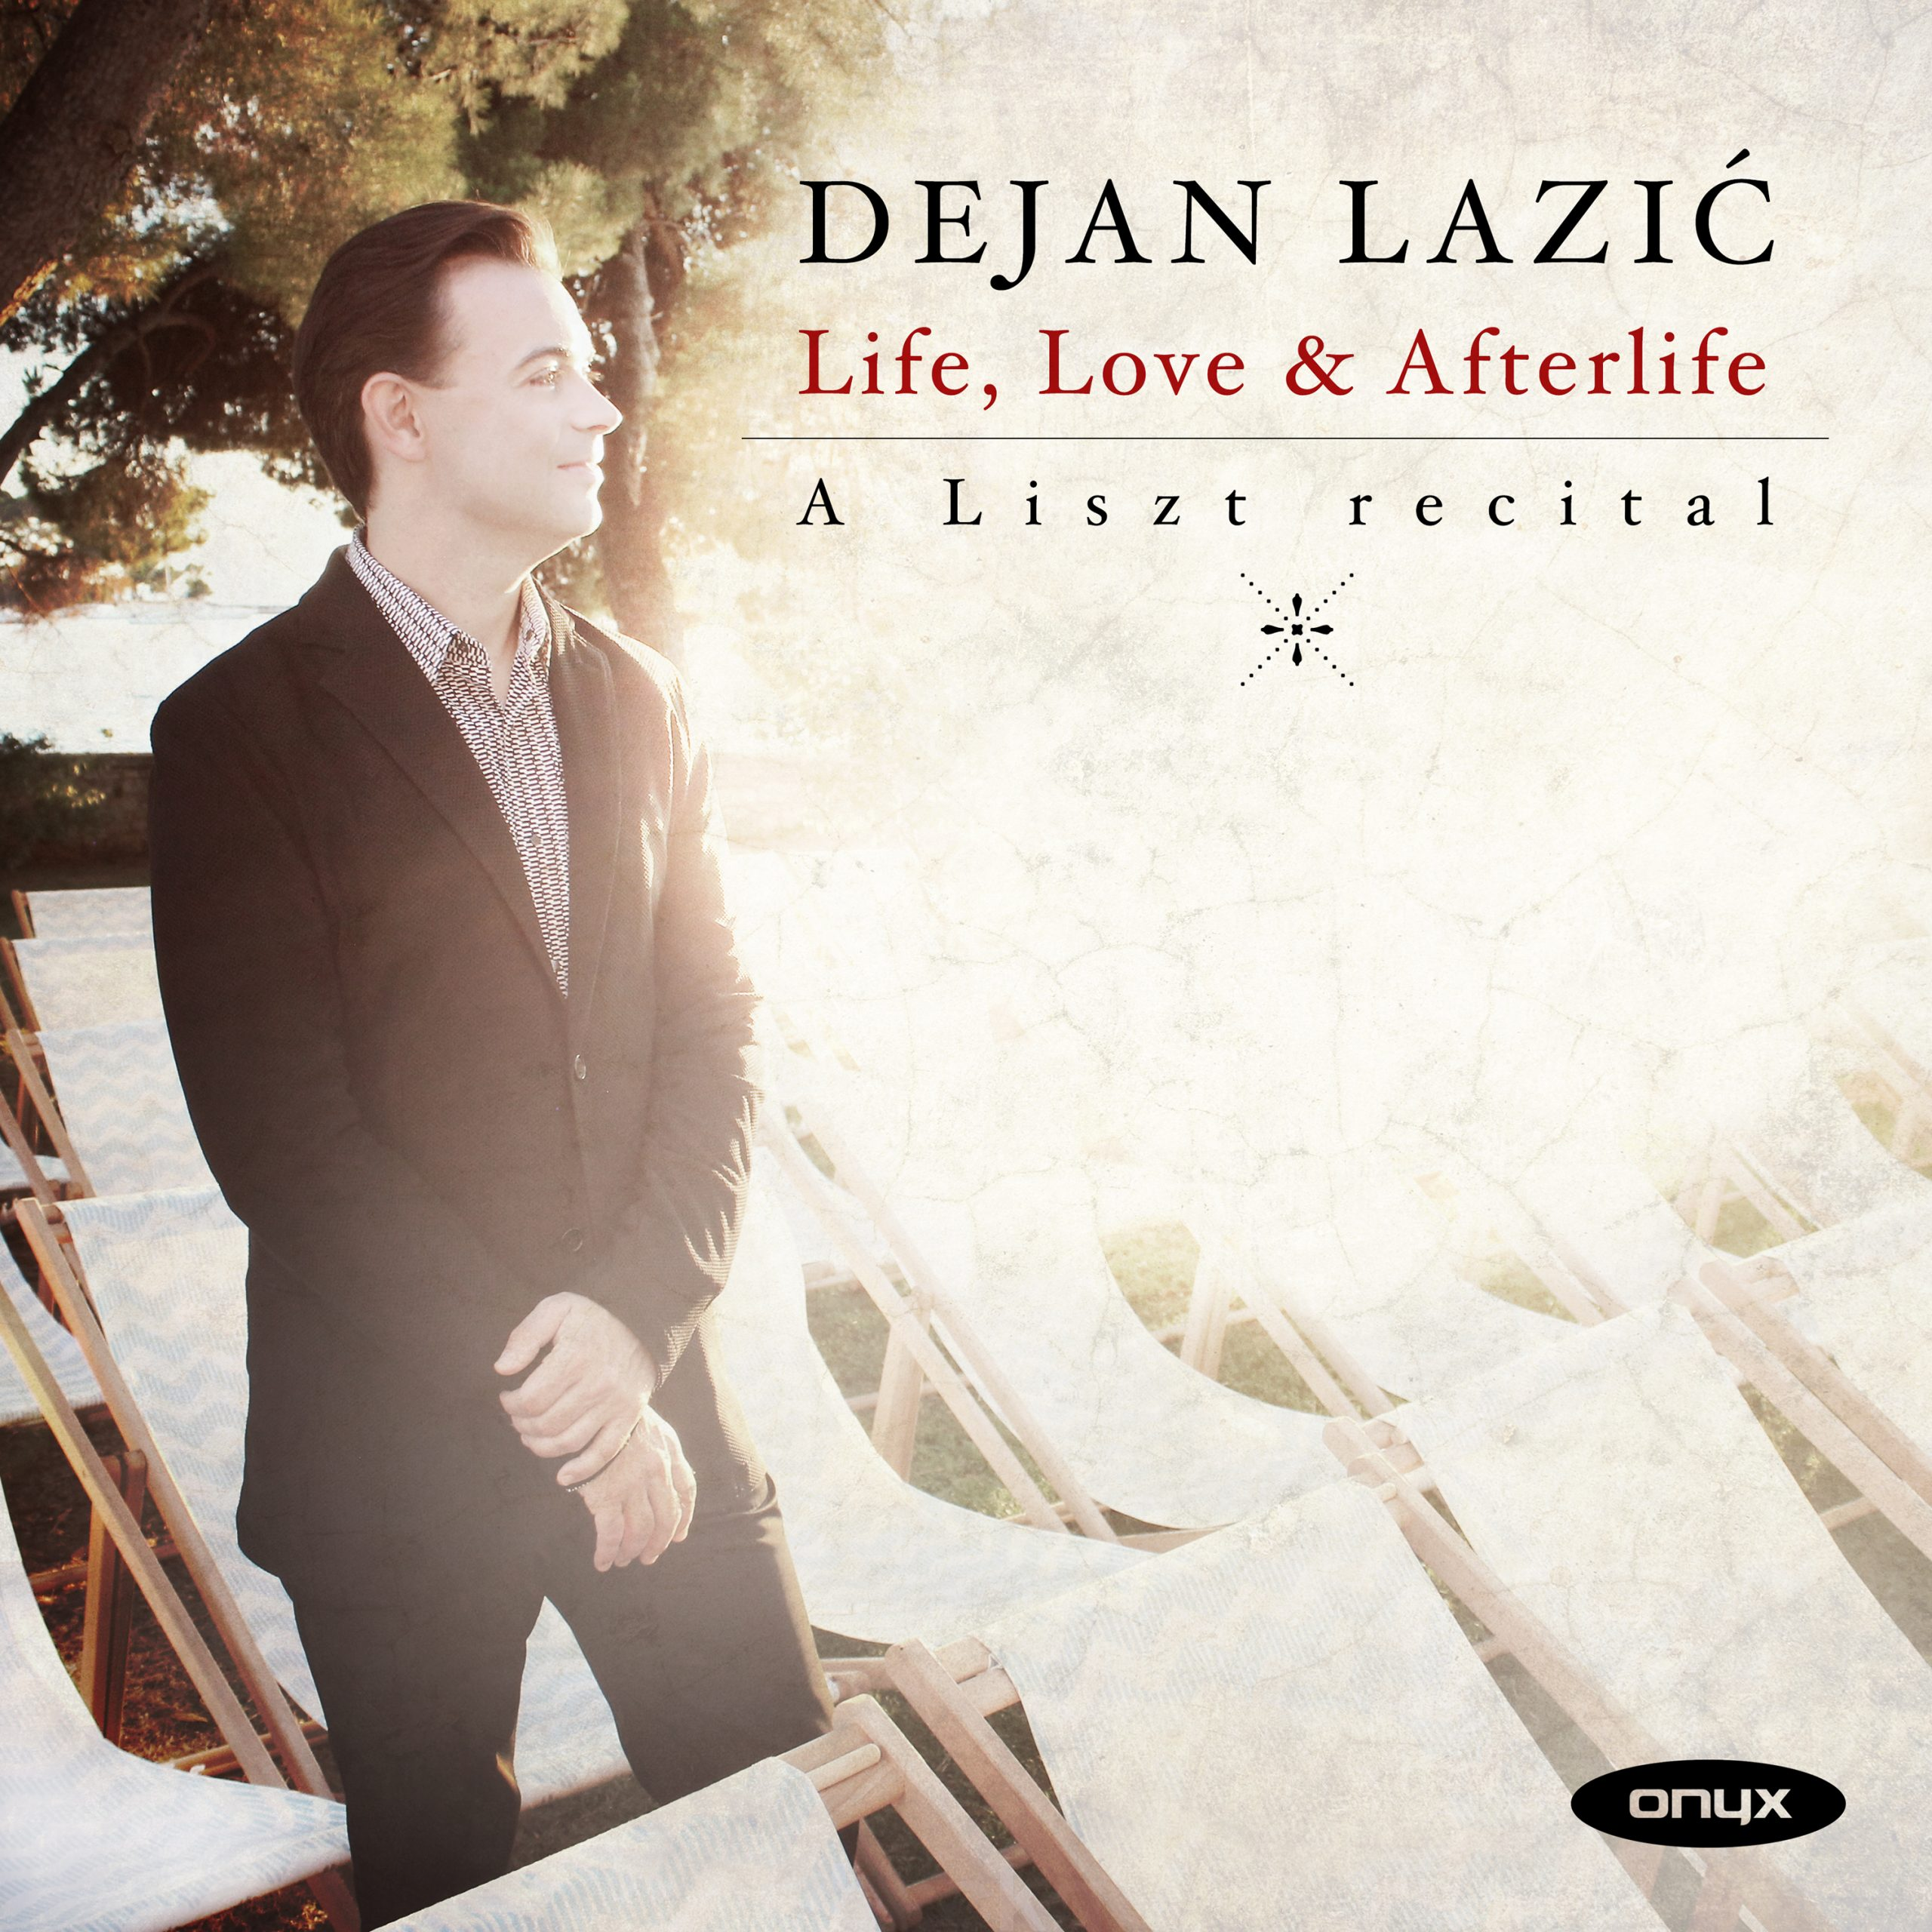 Life, Love & Afterlife: A Liszt Recital